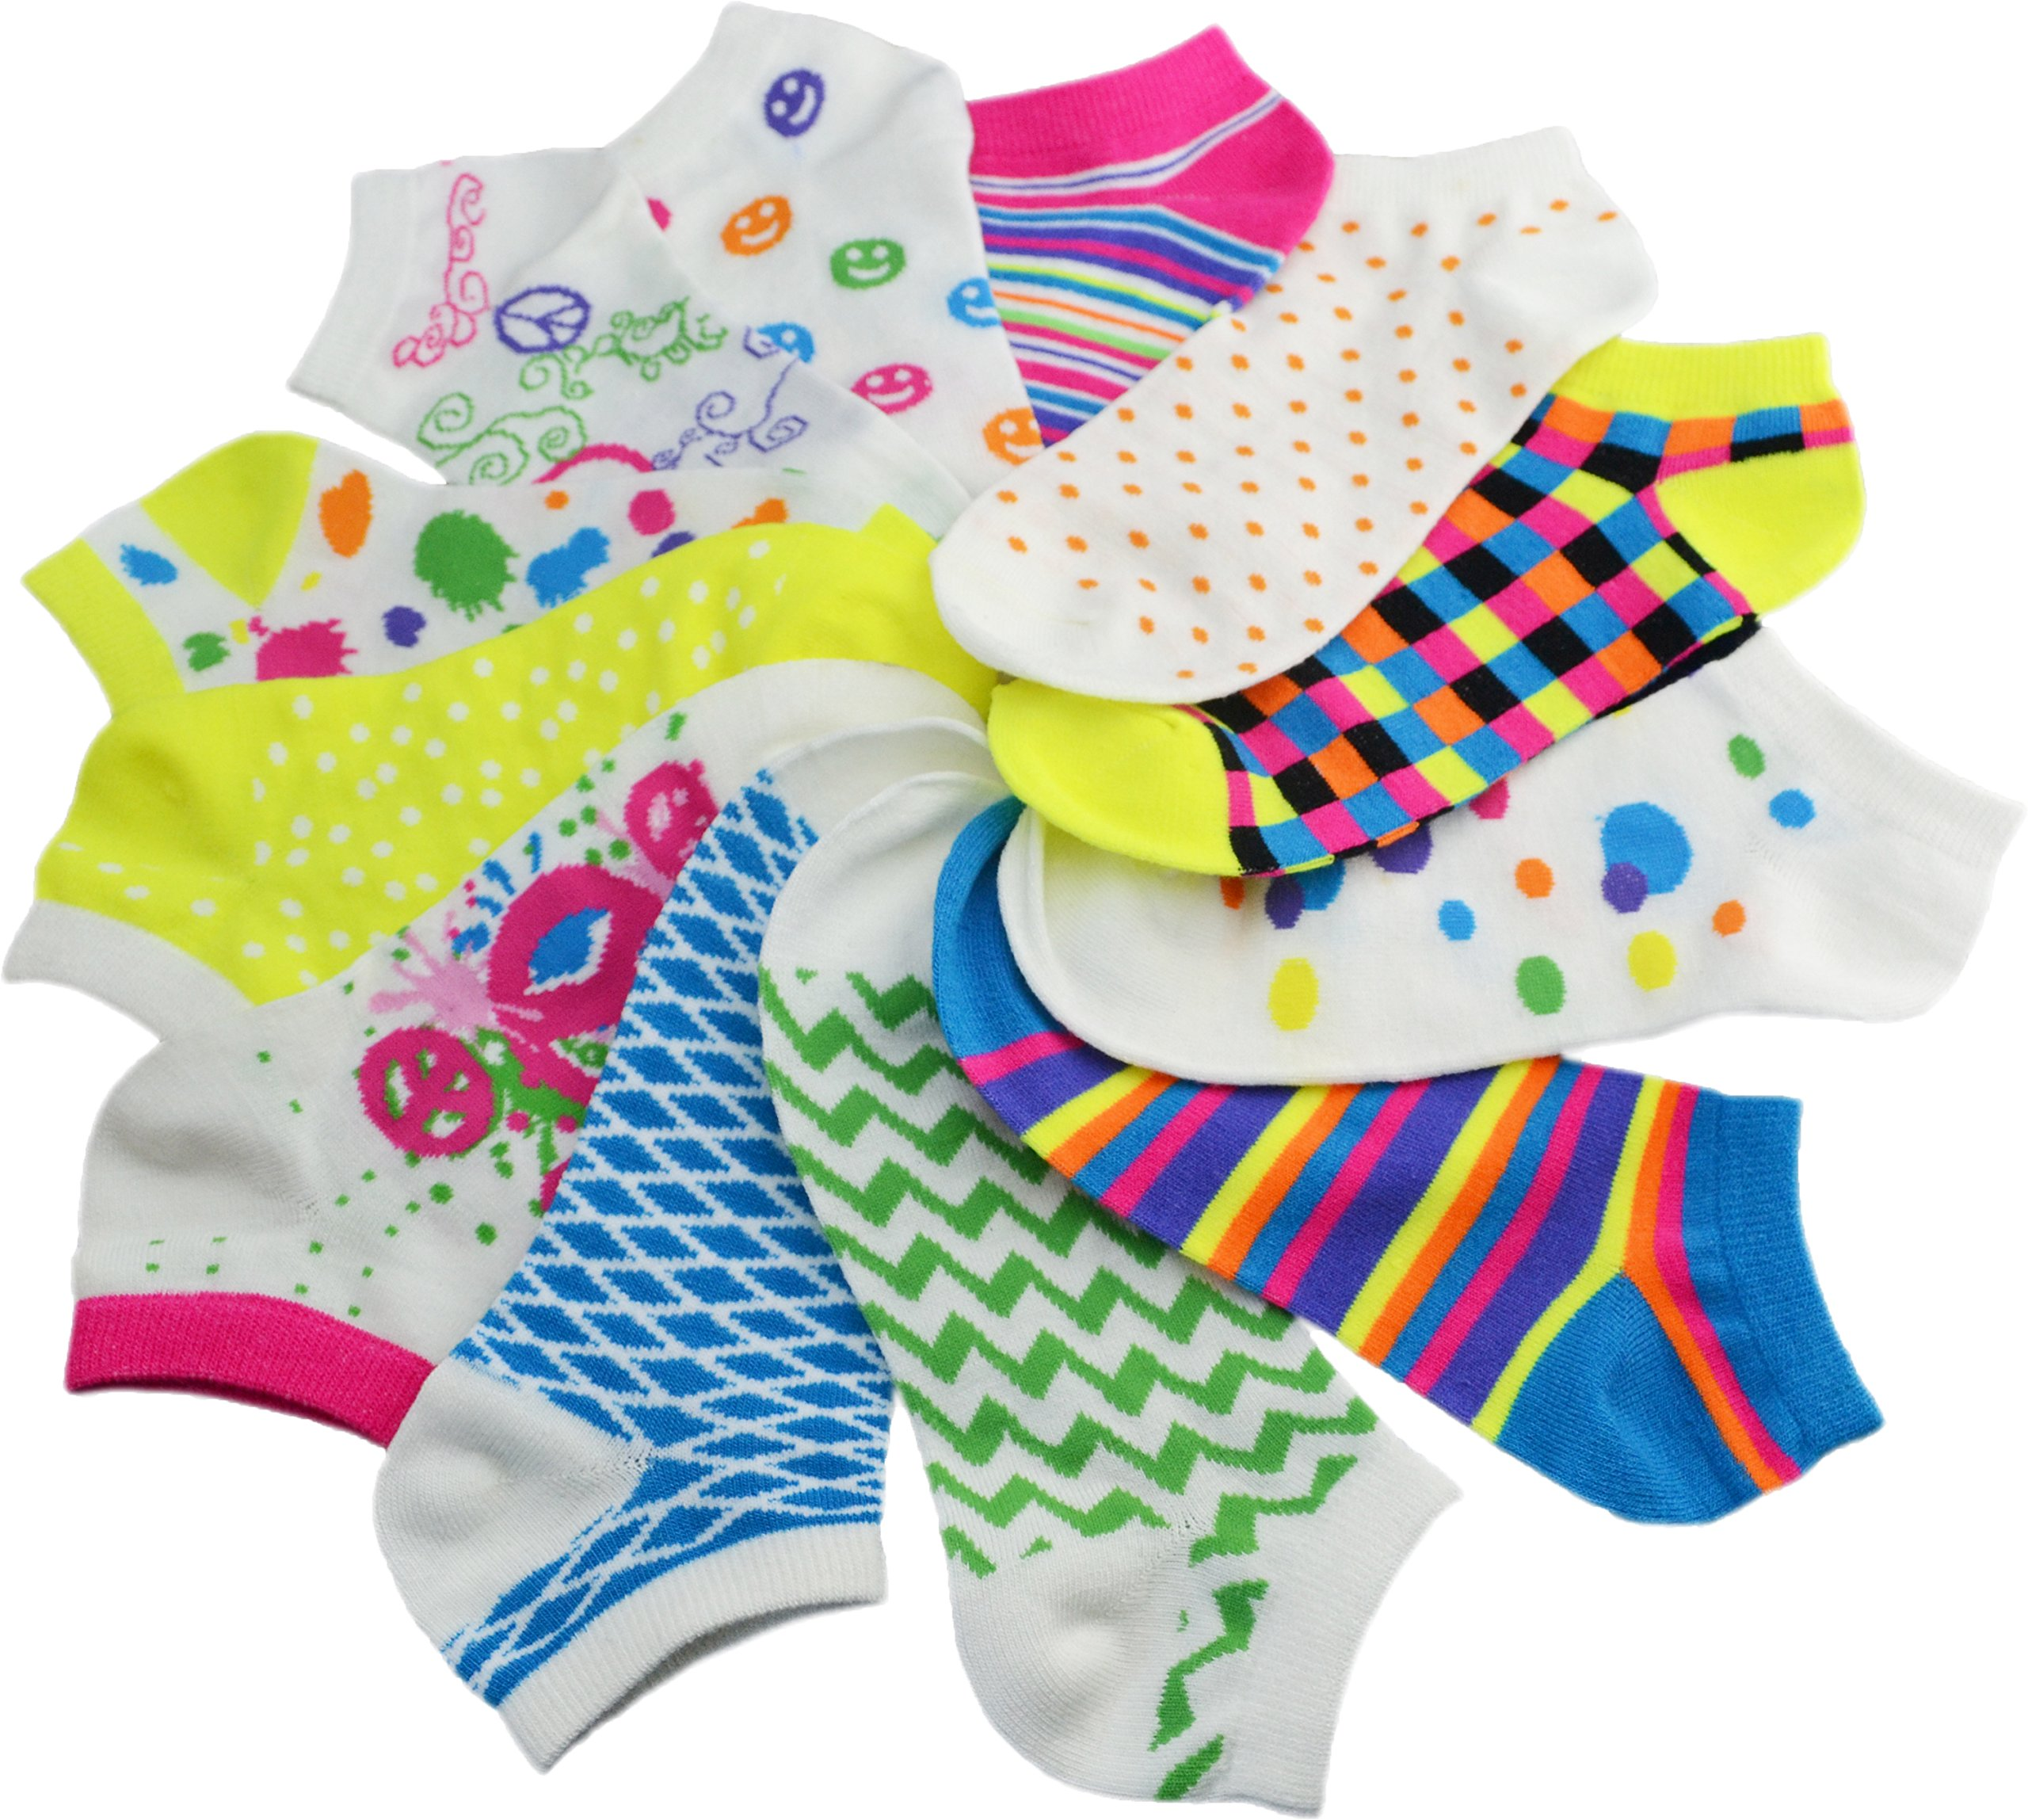 Women's 6-Pairs Low Cut Colorful Patterned Fashion Design Ankle Novelty Mix No Show Socks,Size(9-11)